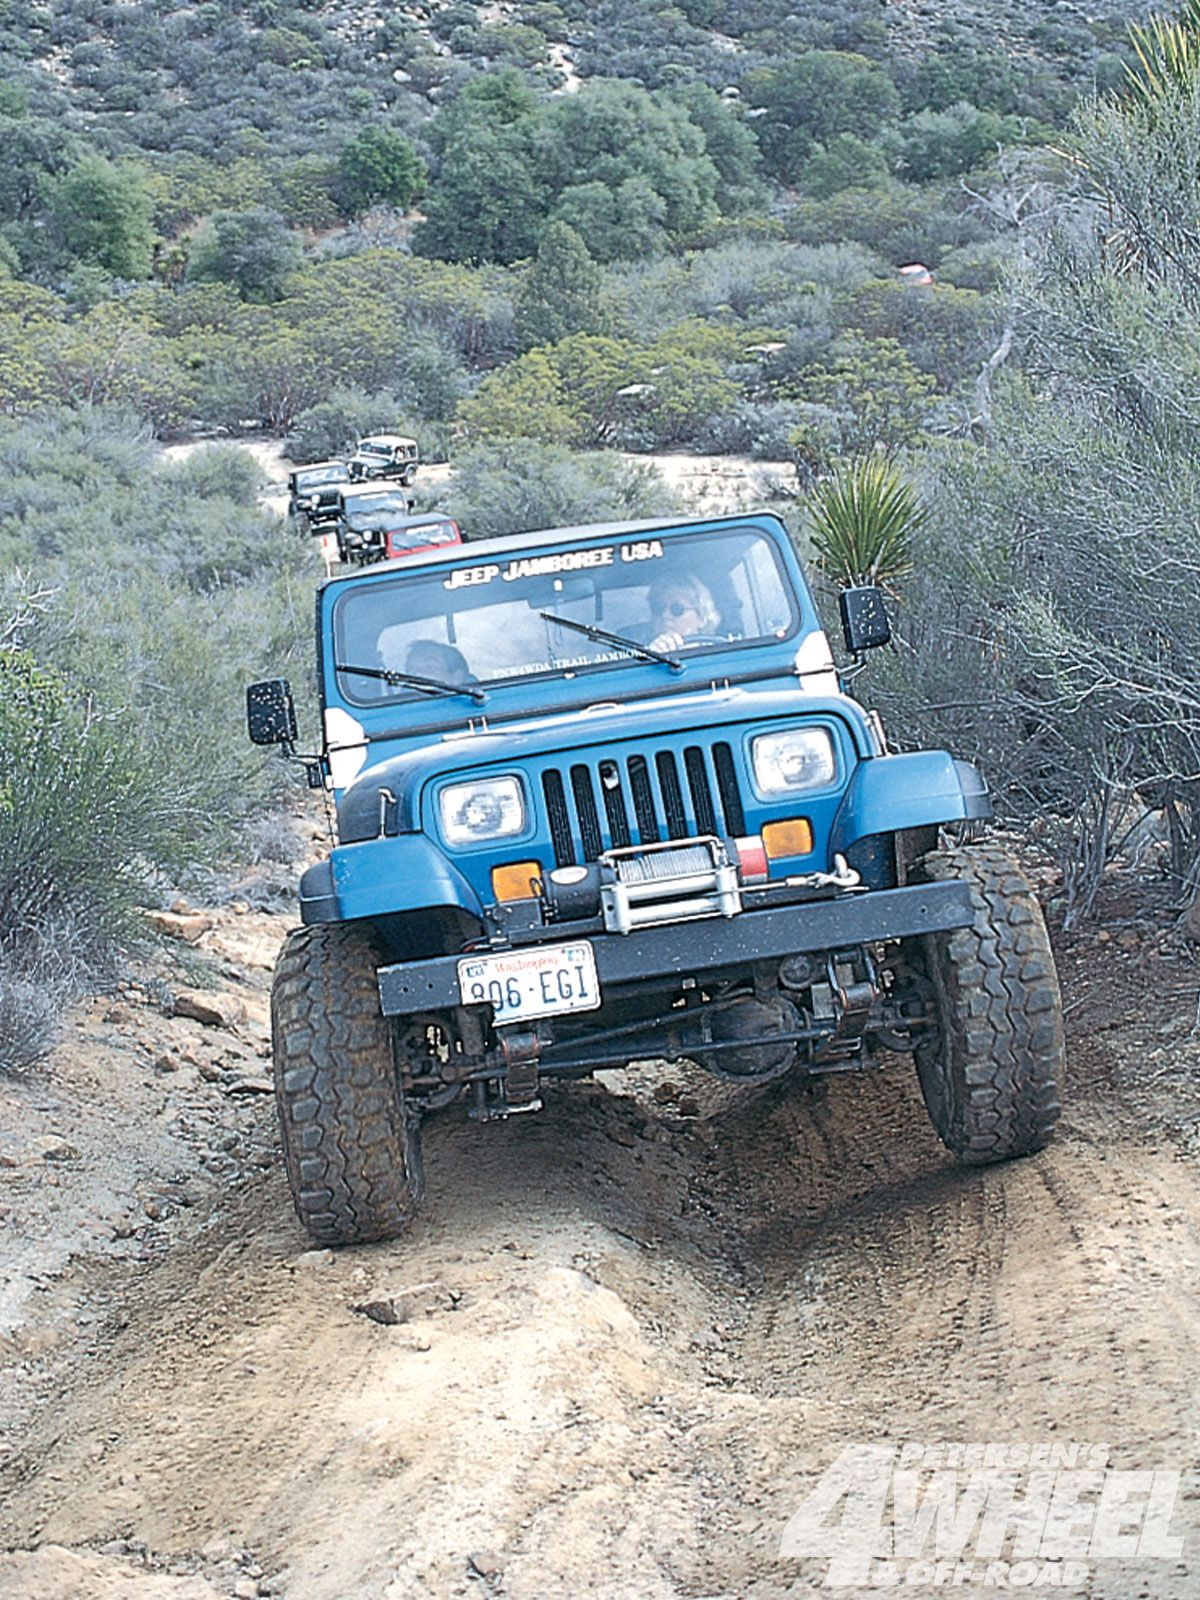 Sea Of Cortez Jeep Jamboree Jeep Wranger Yj Jeep Yj Jeep